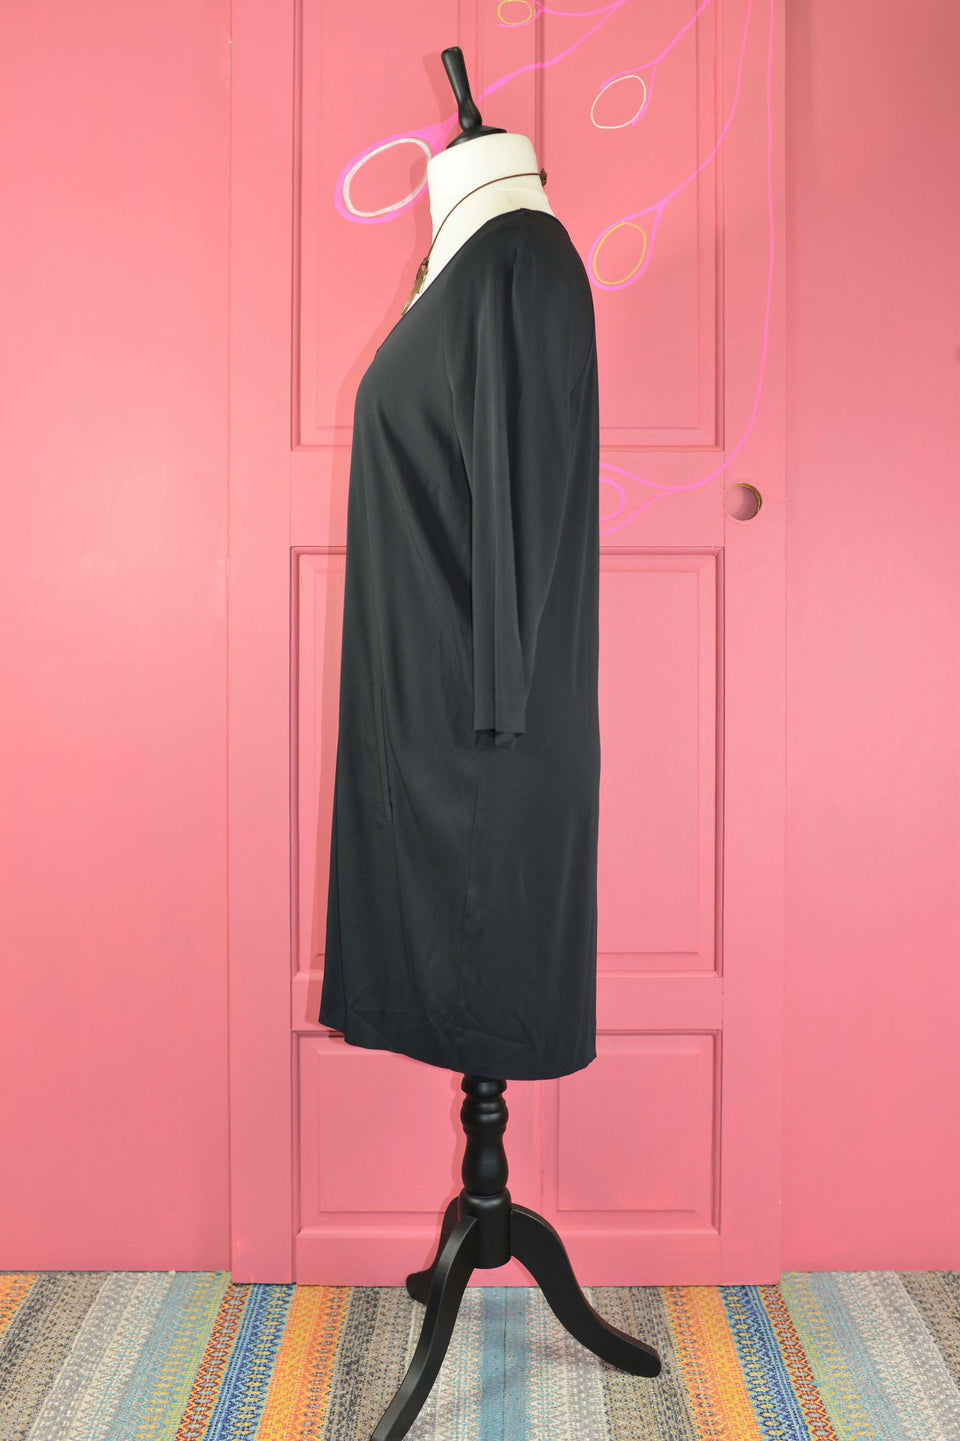 DAMSEL IN A DRESS Women's Black Shirt Dress with Pockets, Size 14. Pre-loved.